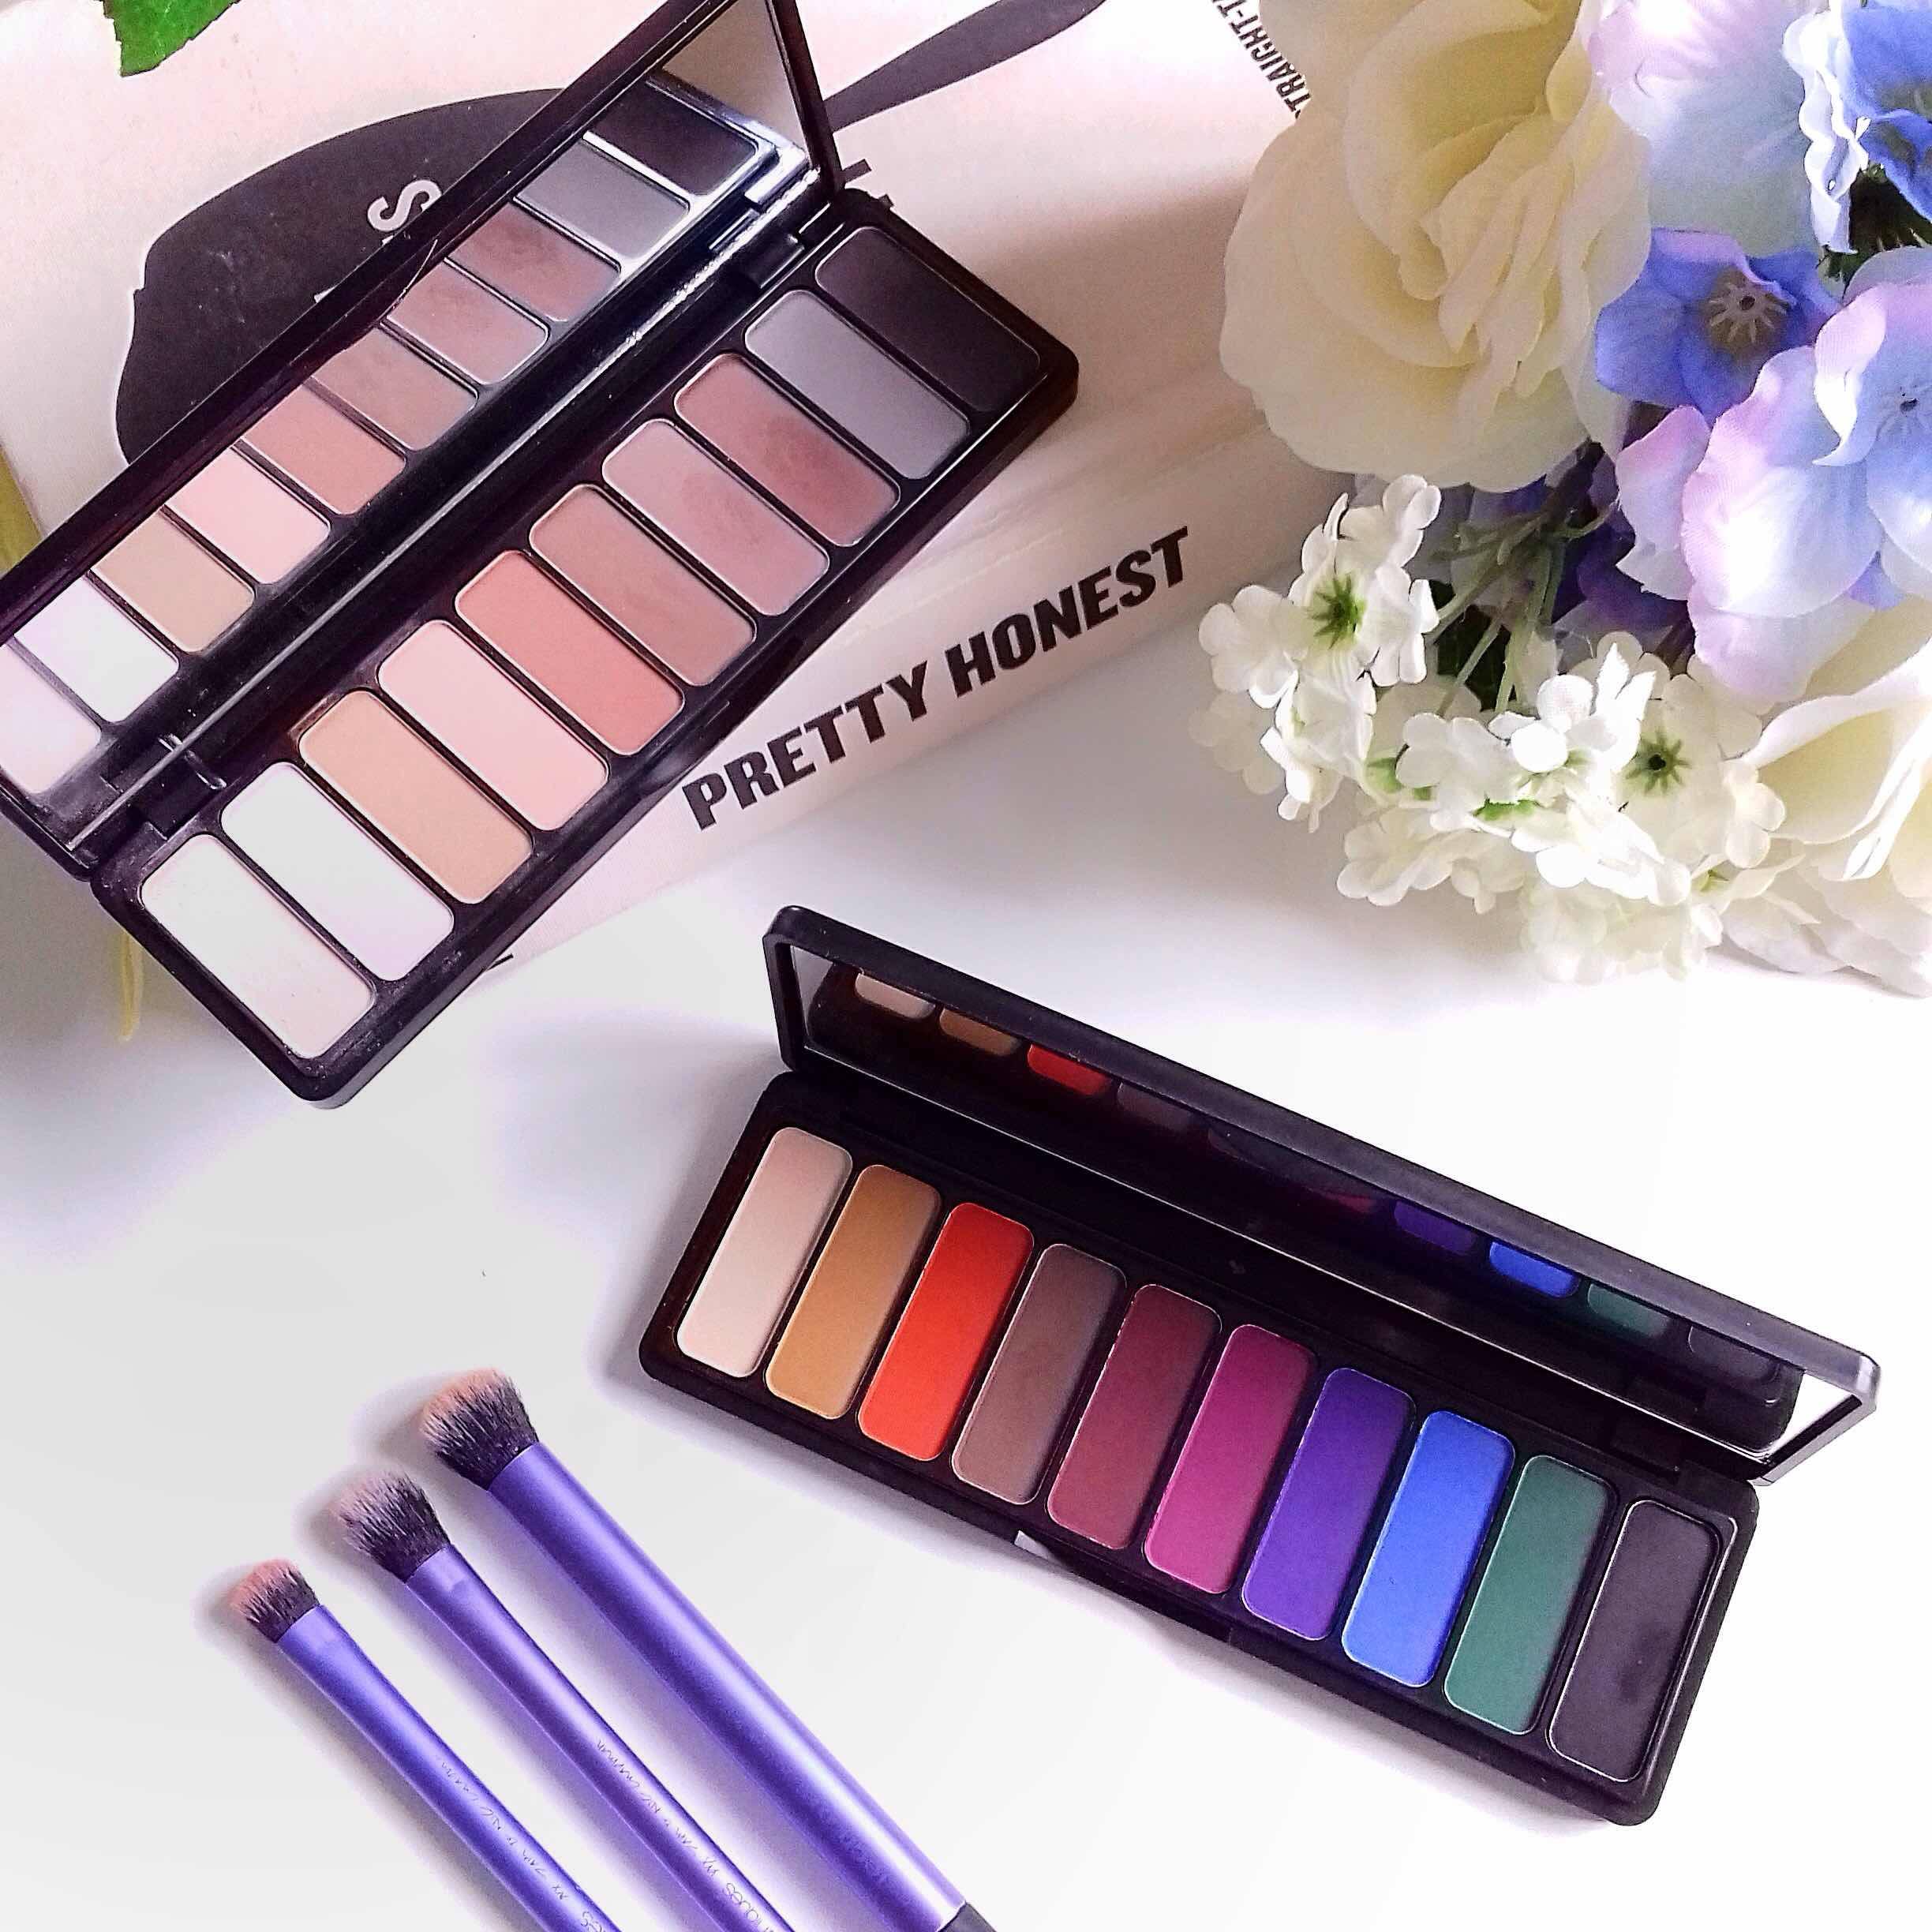 elf, mad for mattes, eyeshadow palettes, mattes, review, sheer gloss, makeup, eyeshadow